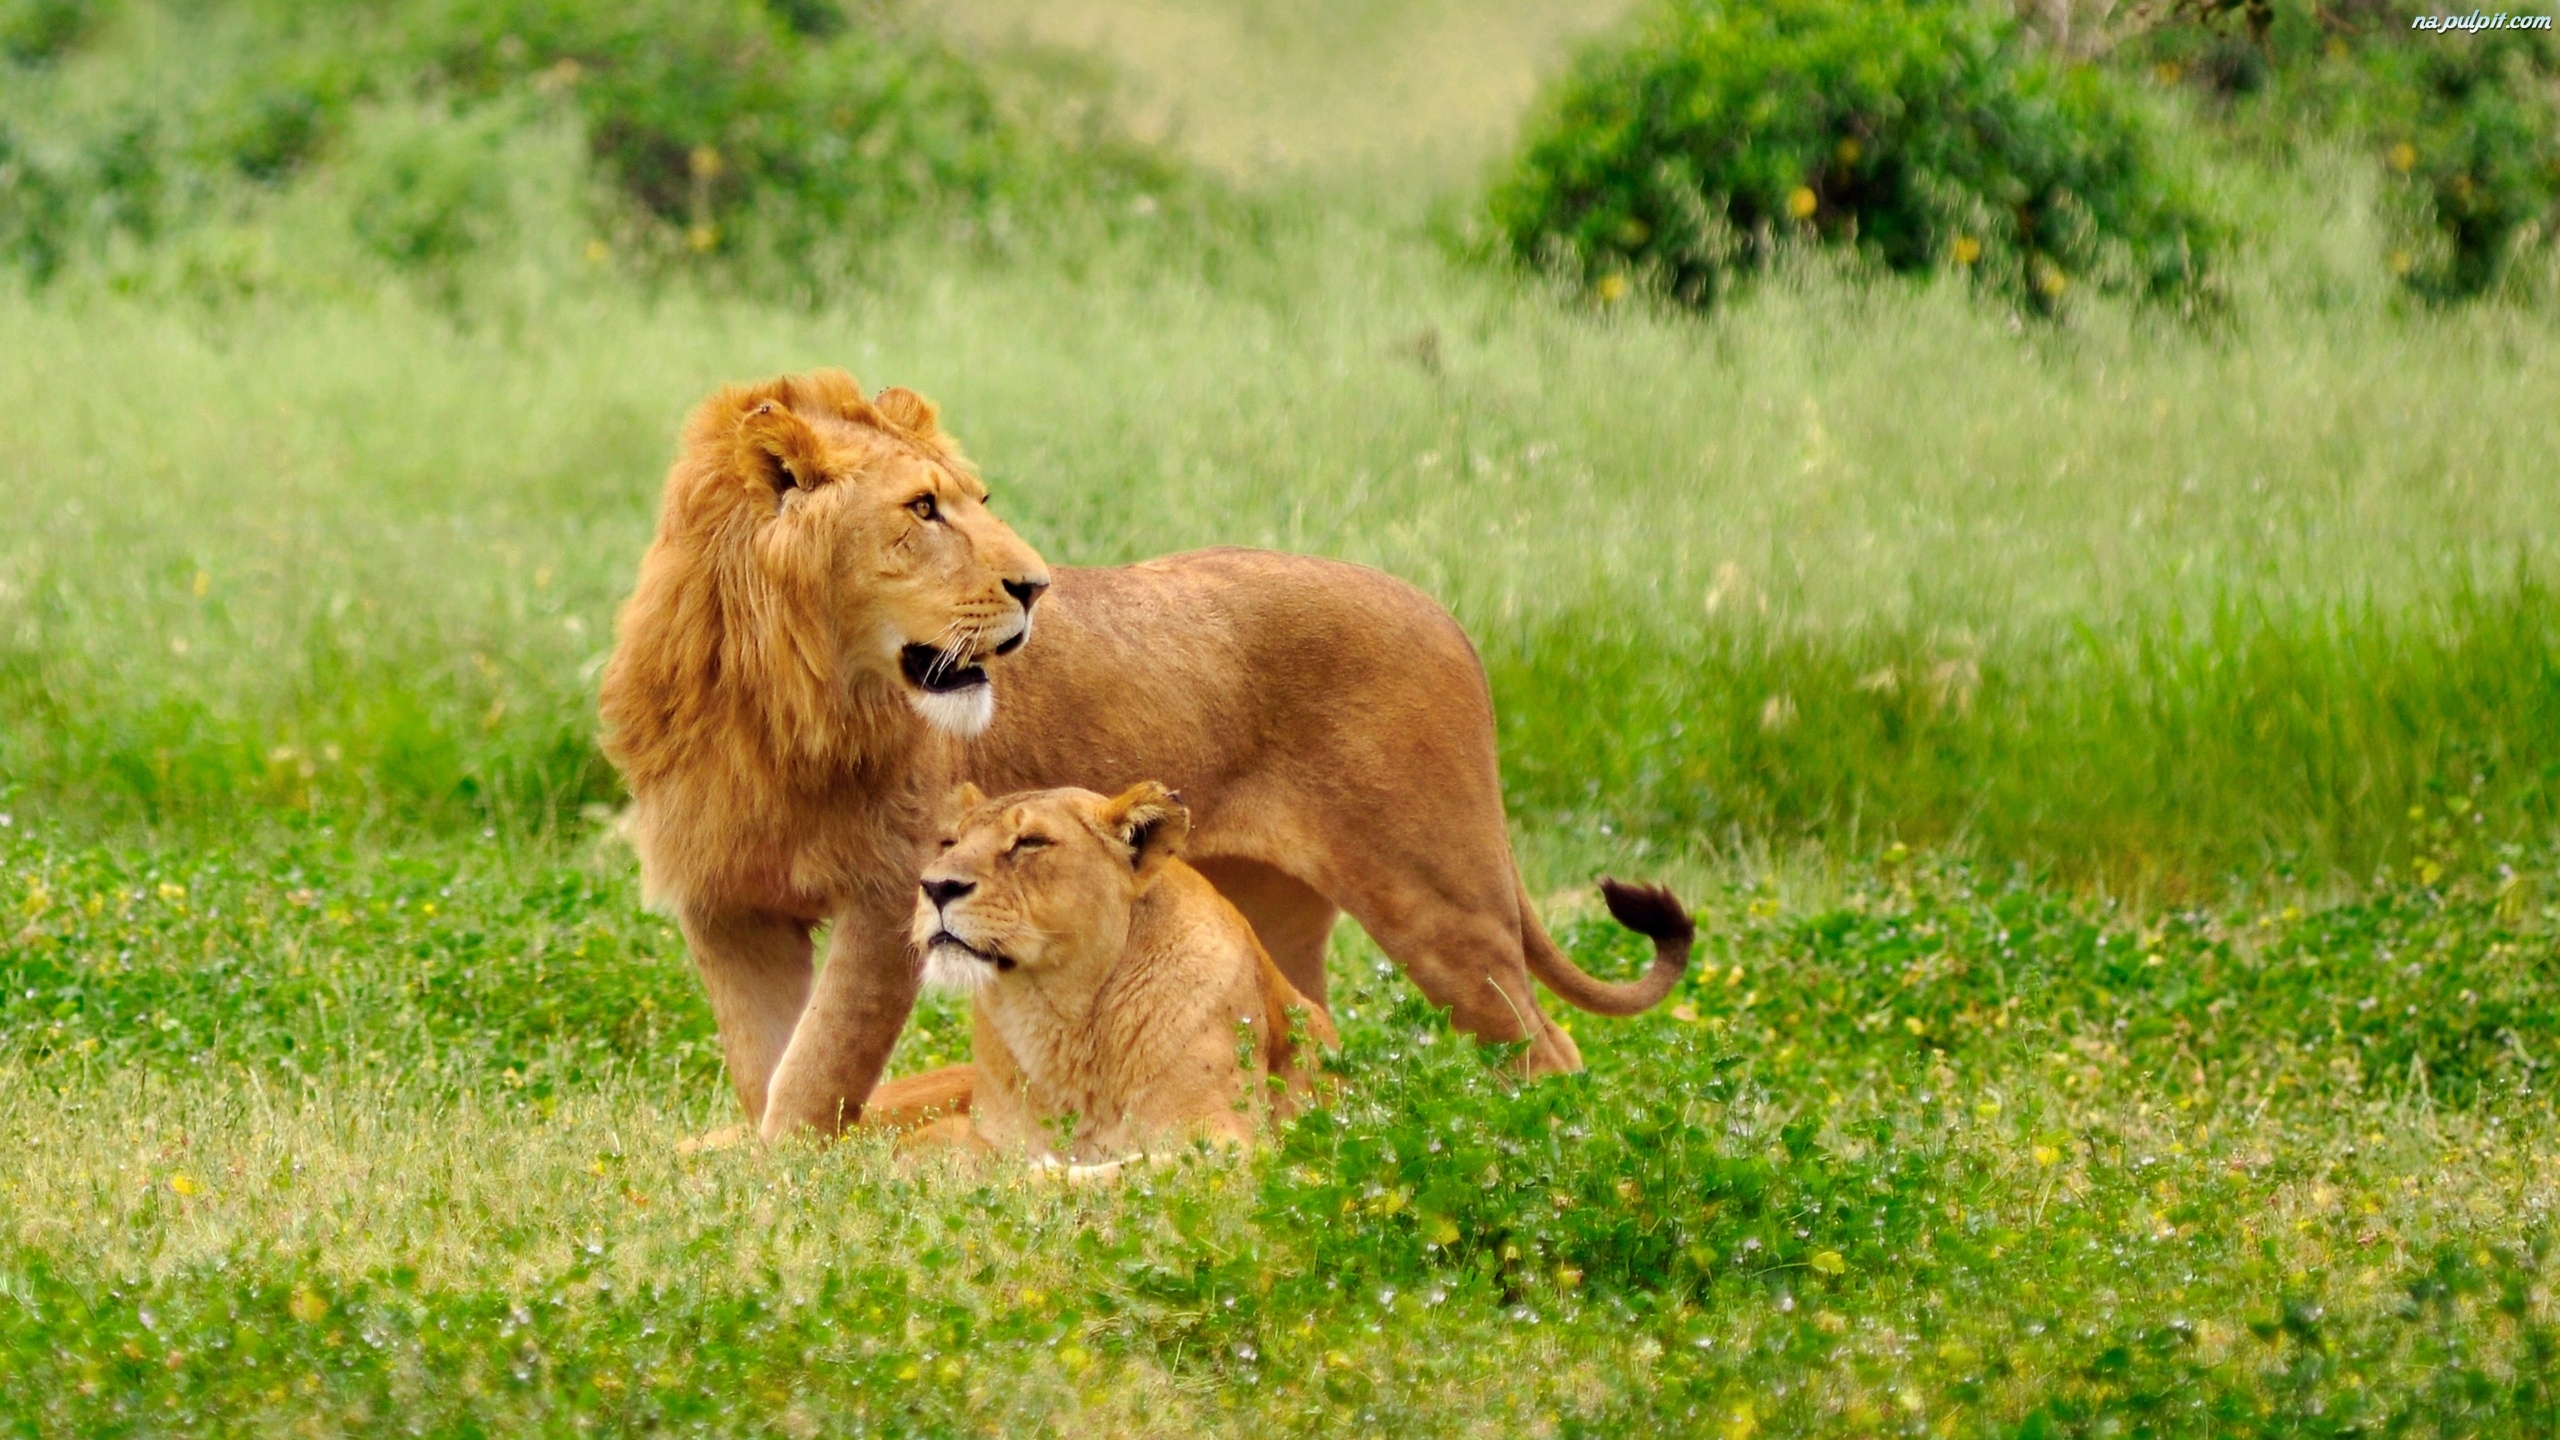 10 Top Cute Wild Animal Wallpaper Full Hd 1080p For Pc: Lwy, Trawa Na Pulpit